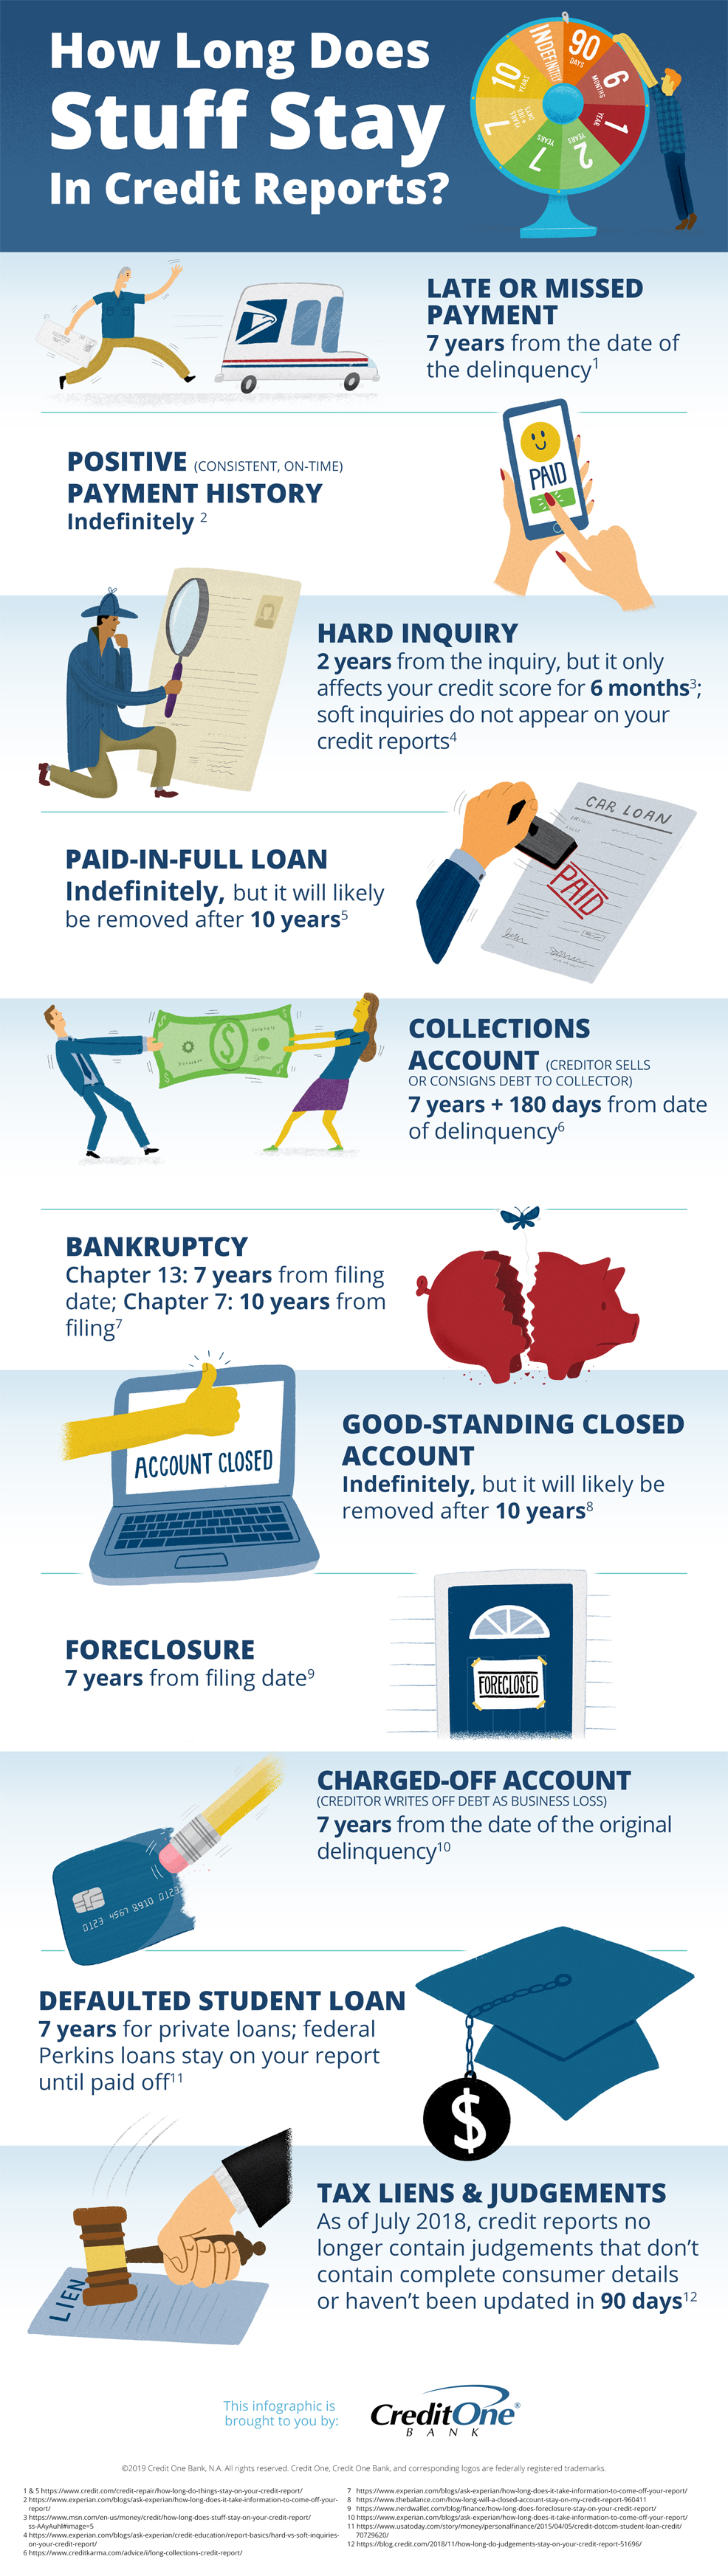 How Long Information Stays in Credit Reports [Infographic]